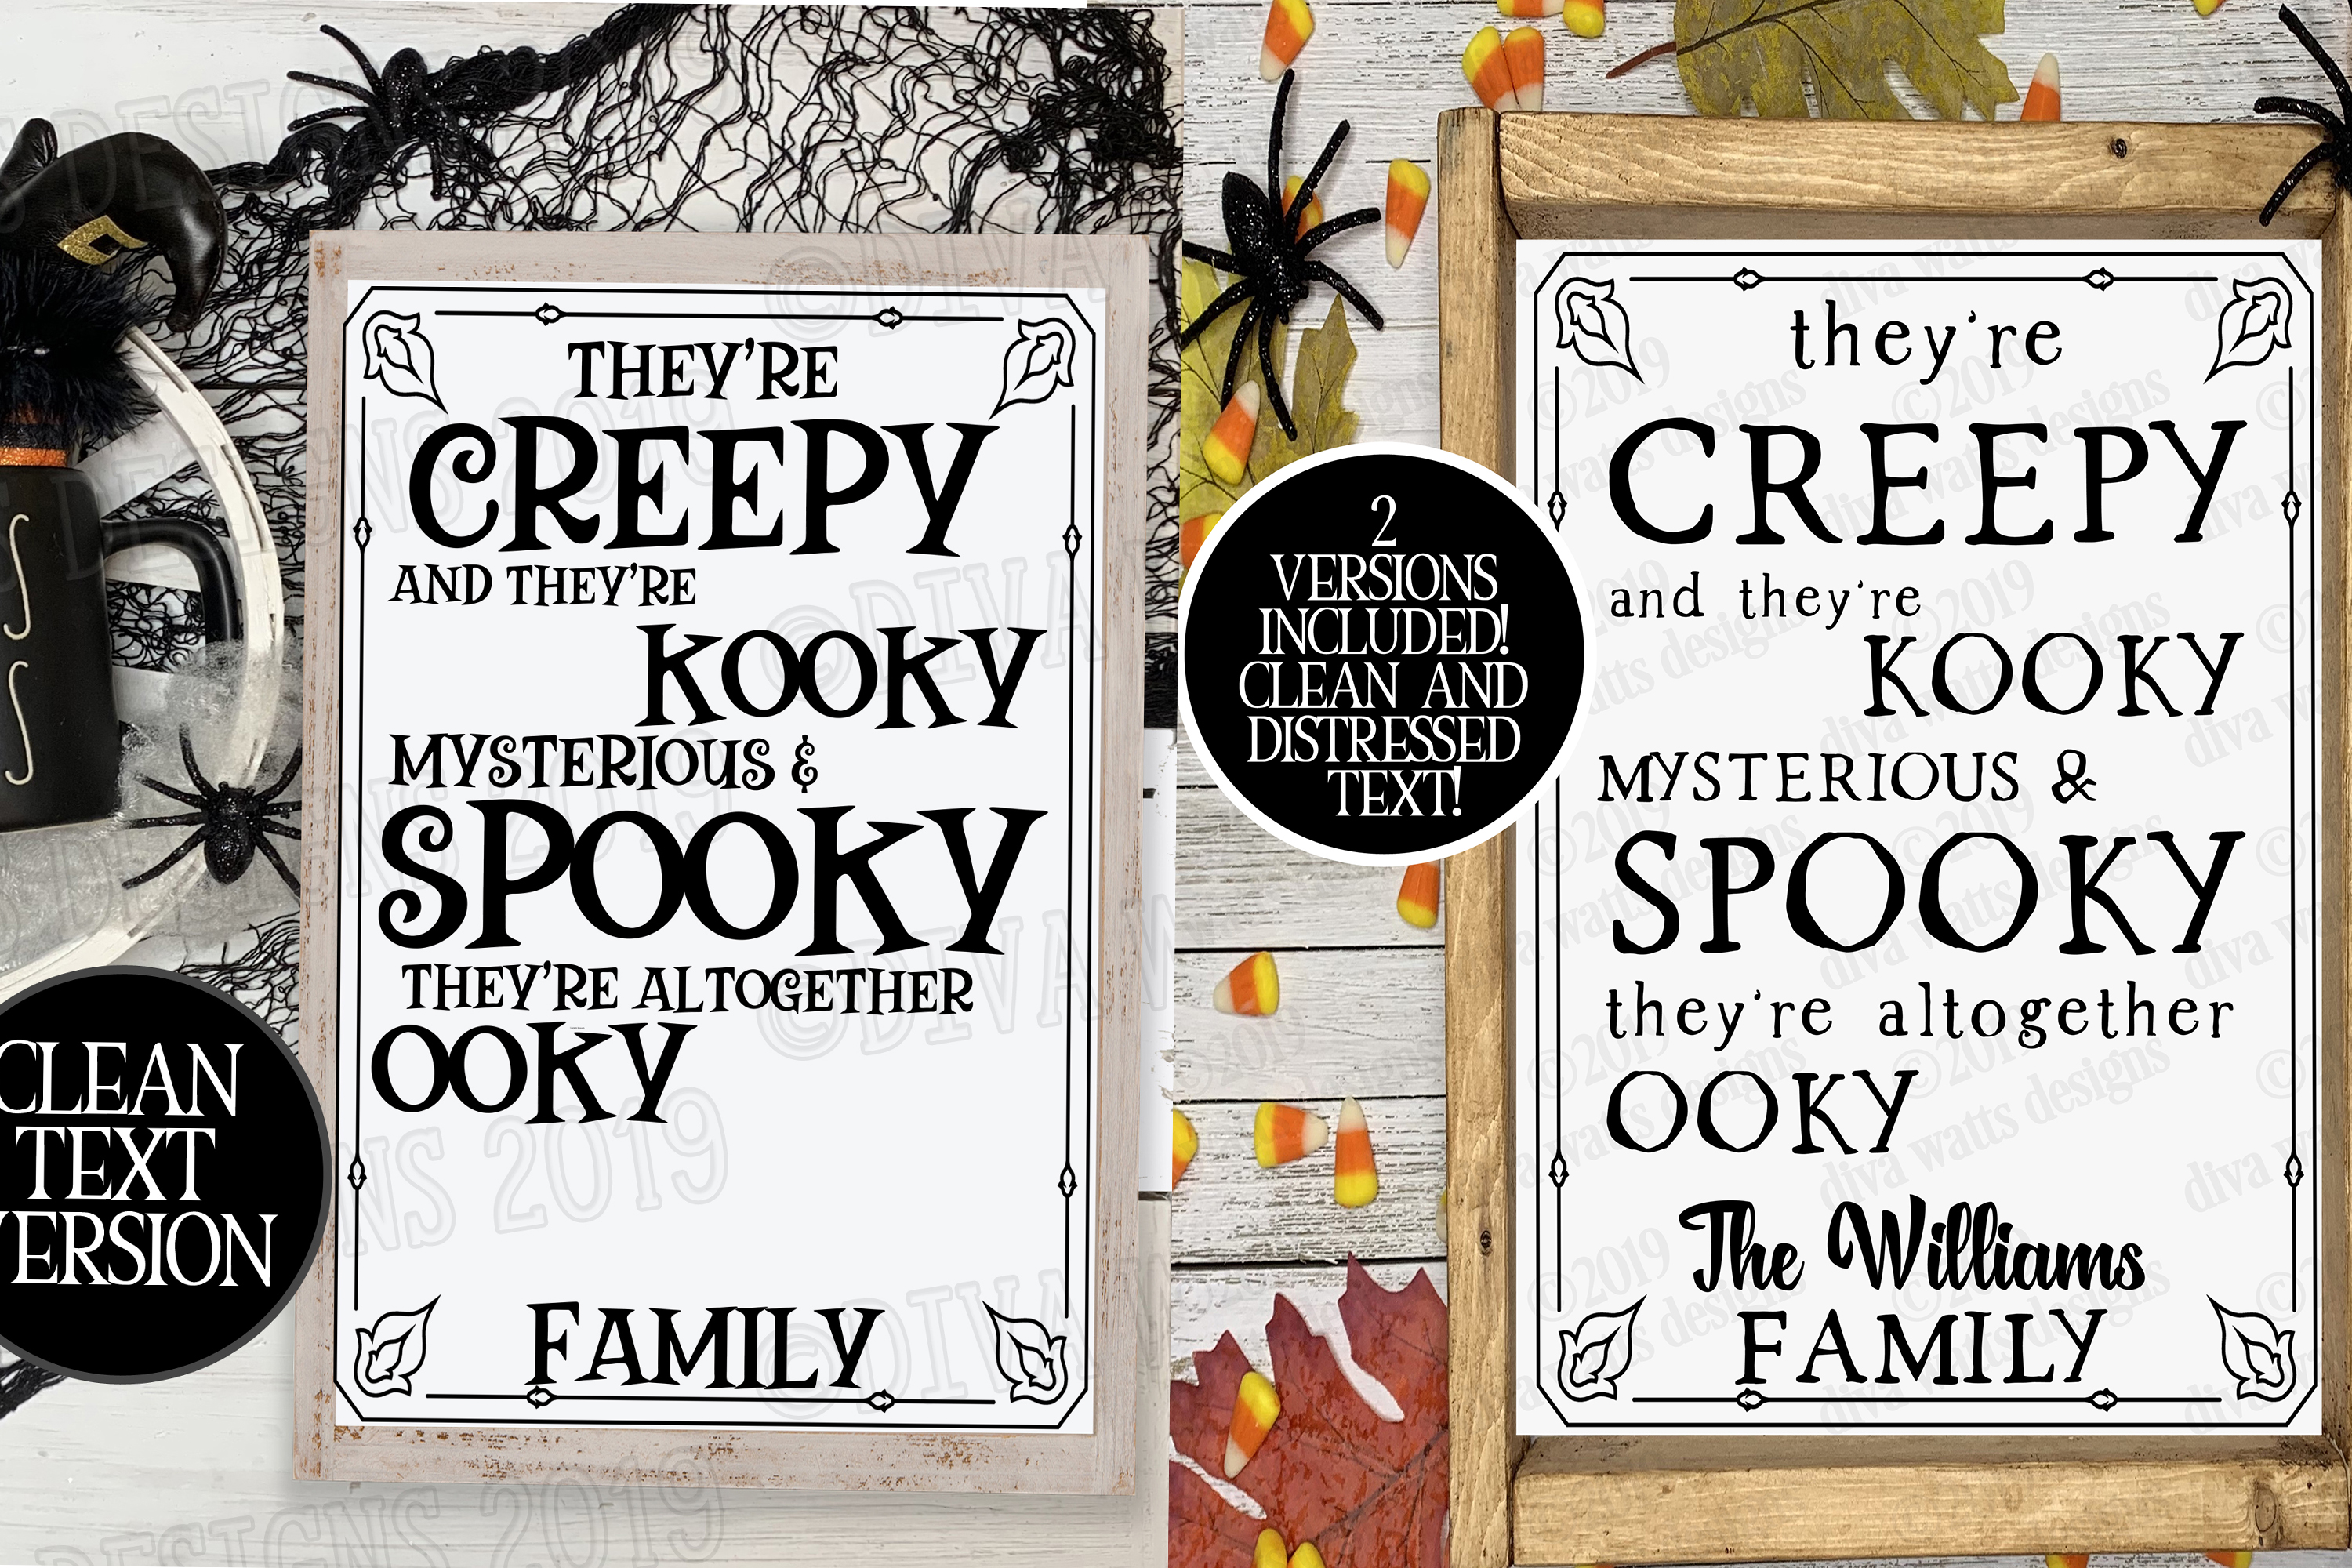 Creepy & Kooky Mysterious Spooky Halloween Family Name Sign example image 2